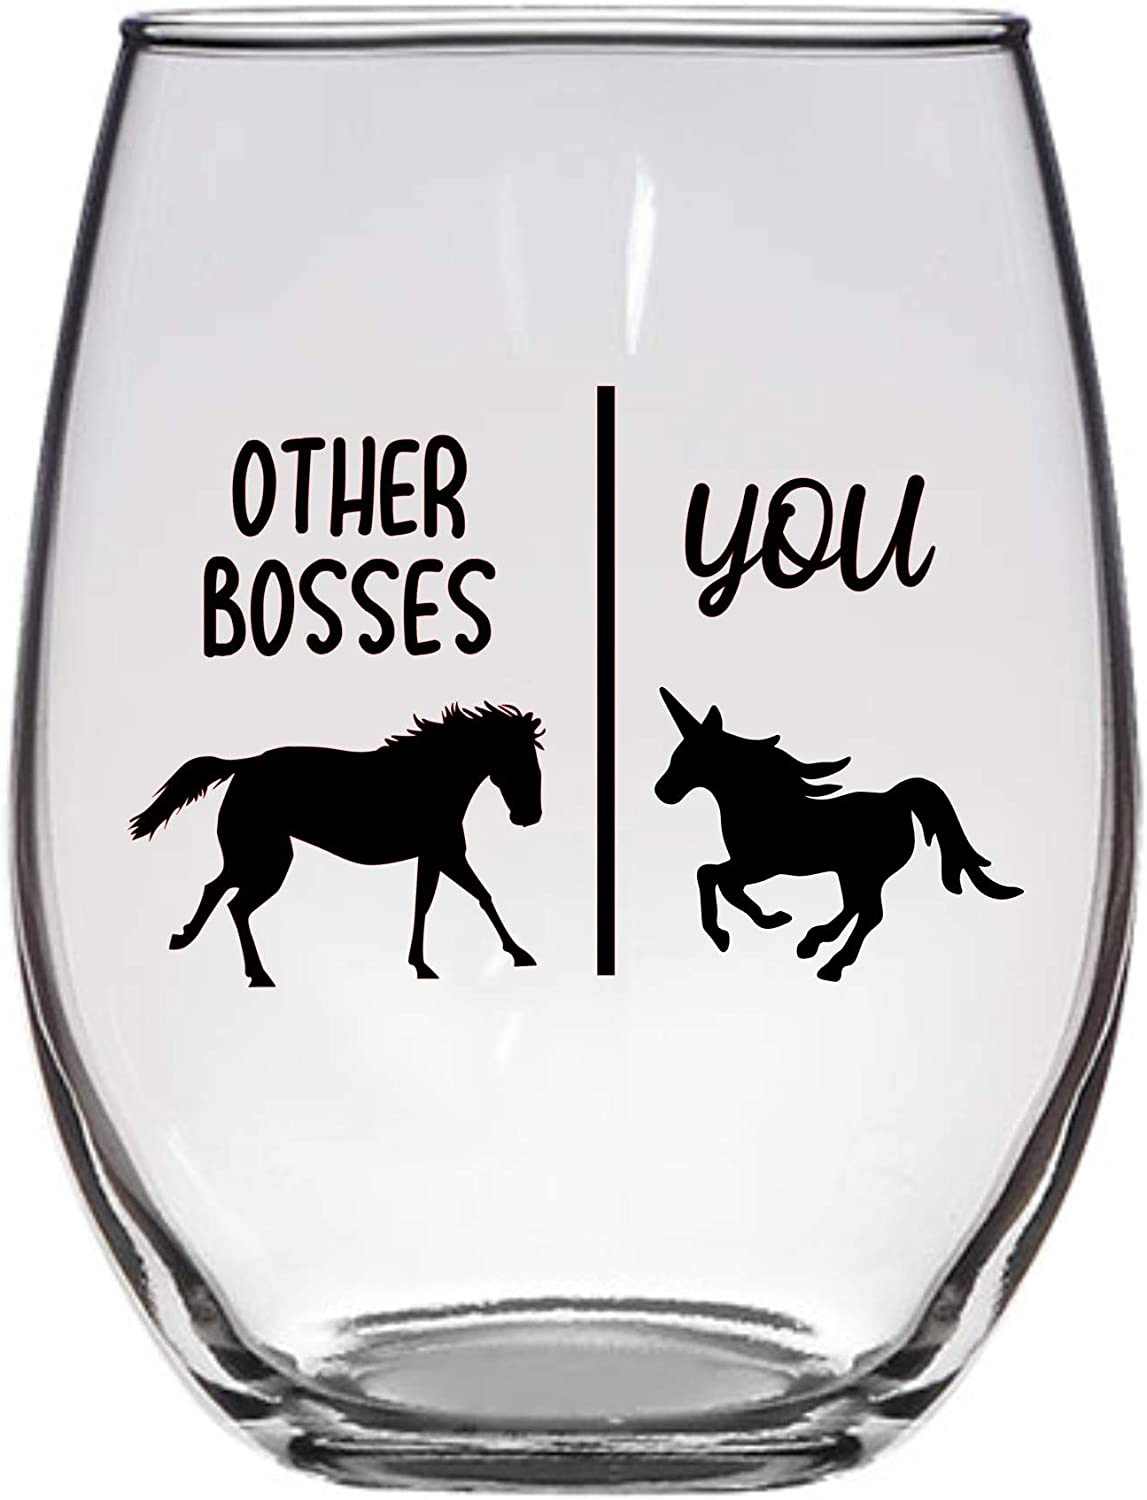 Other Bosses You Wine Glass 21 Oz M Boss Philadelphia Mall Unicorn with Same day shipping Horse and